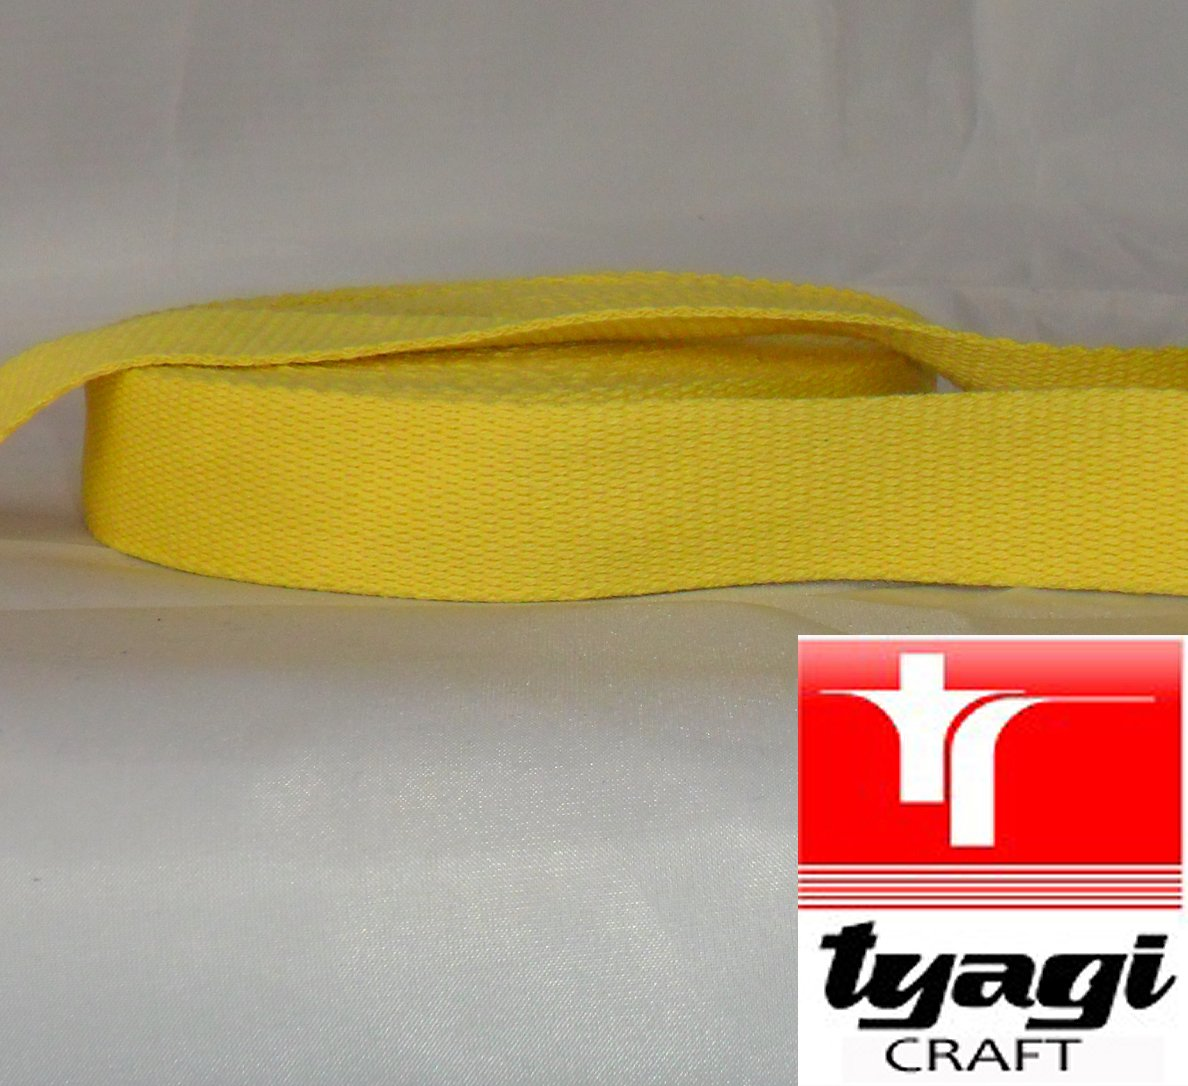 25mm Pure Cotton Tape Strong Thick Webbing Strap Tent Upholestry Bags, Edging, Craft, Dress, Belts Yellow 1MTR Tyagi Craft